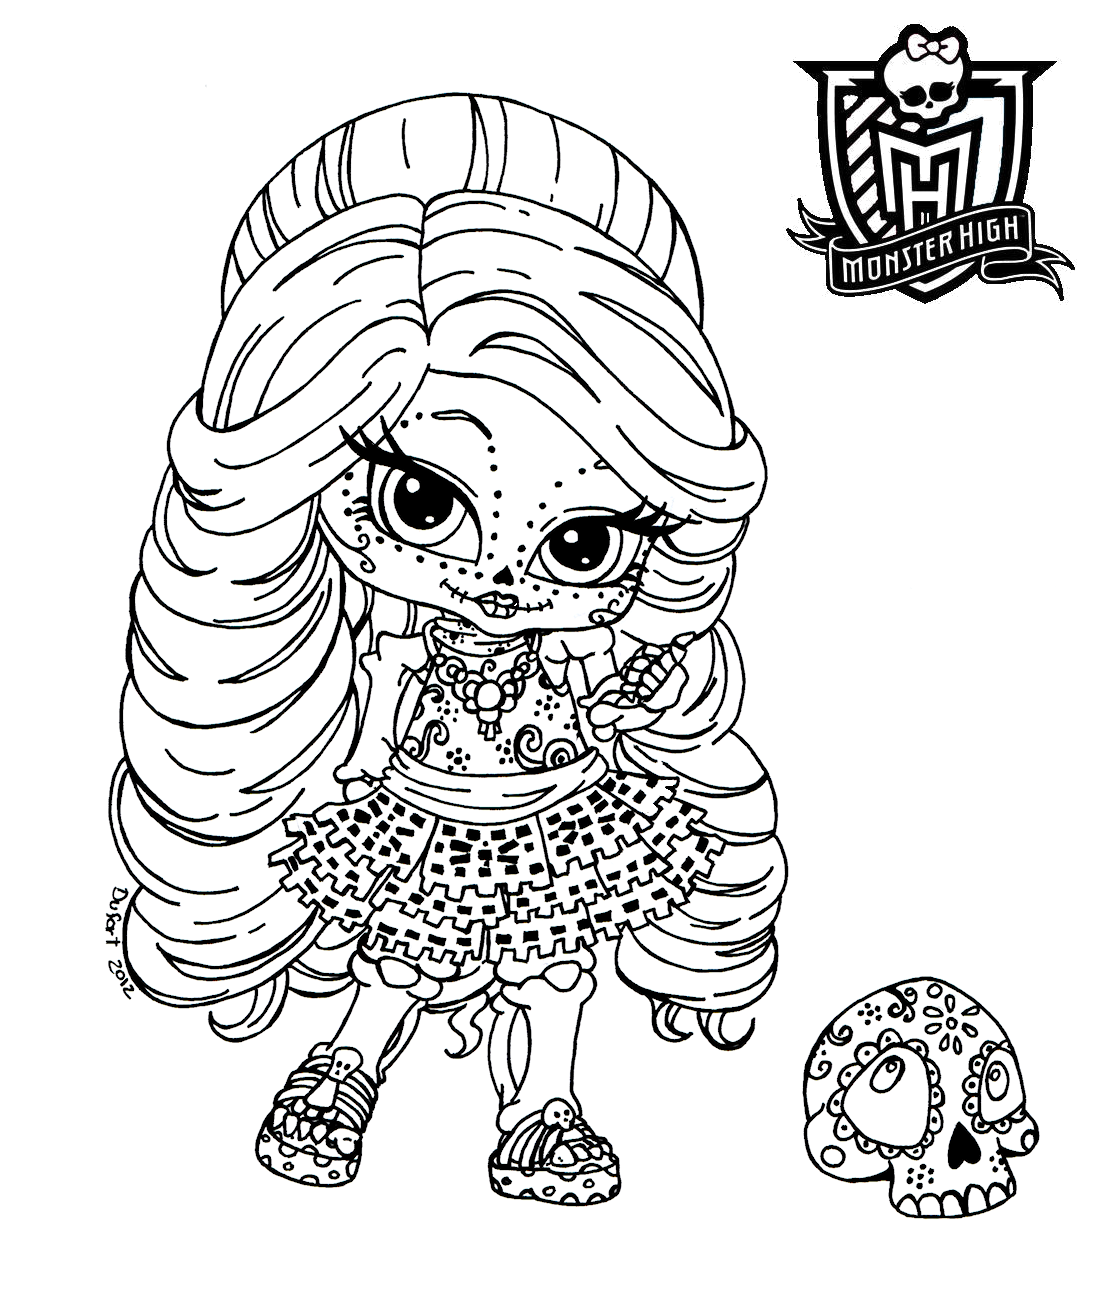 Baby Monster High Coloring Pages | Monster High Coloring Pages Color ...